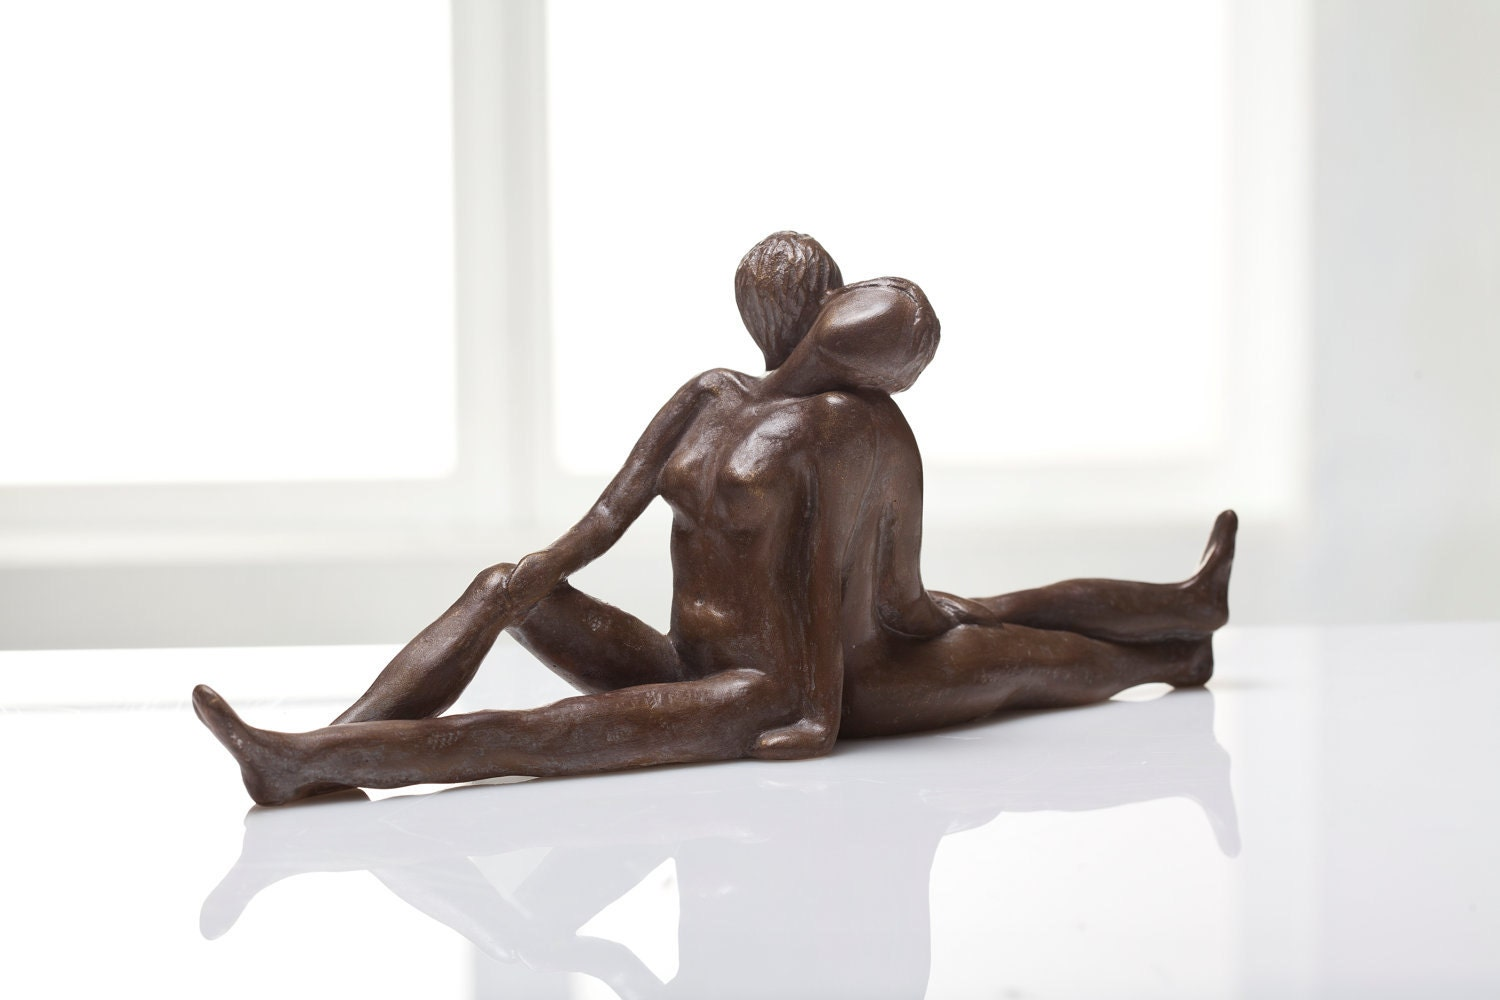 Peaceful Harmony - Man and Woman Sculpture - gilispencer